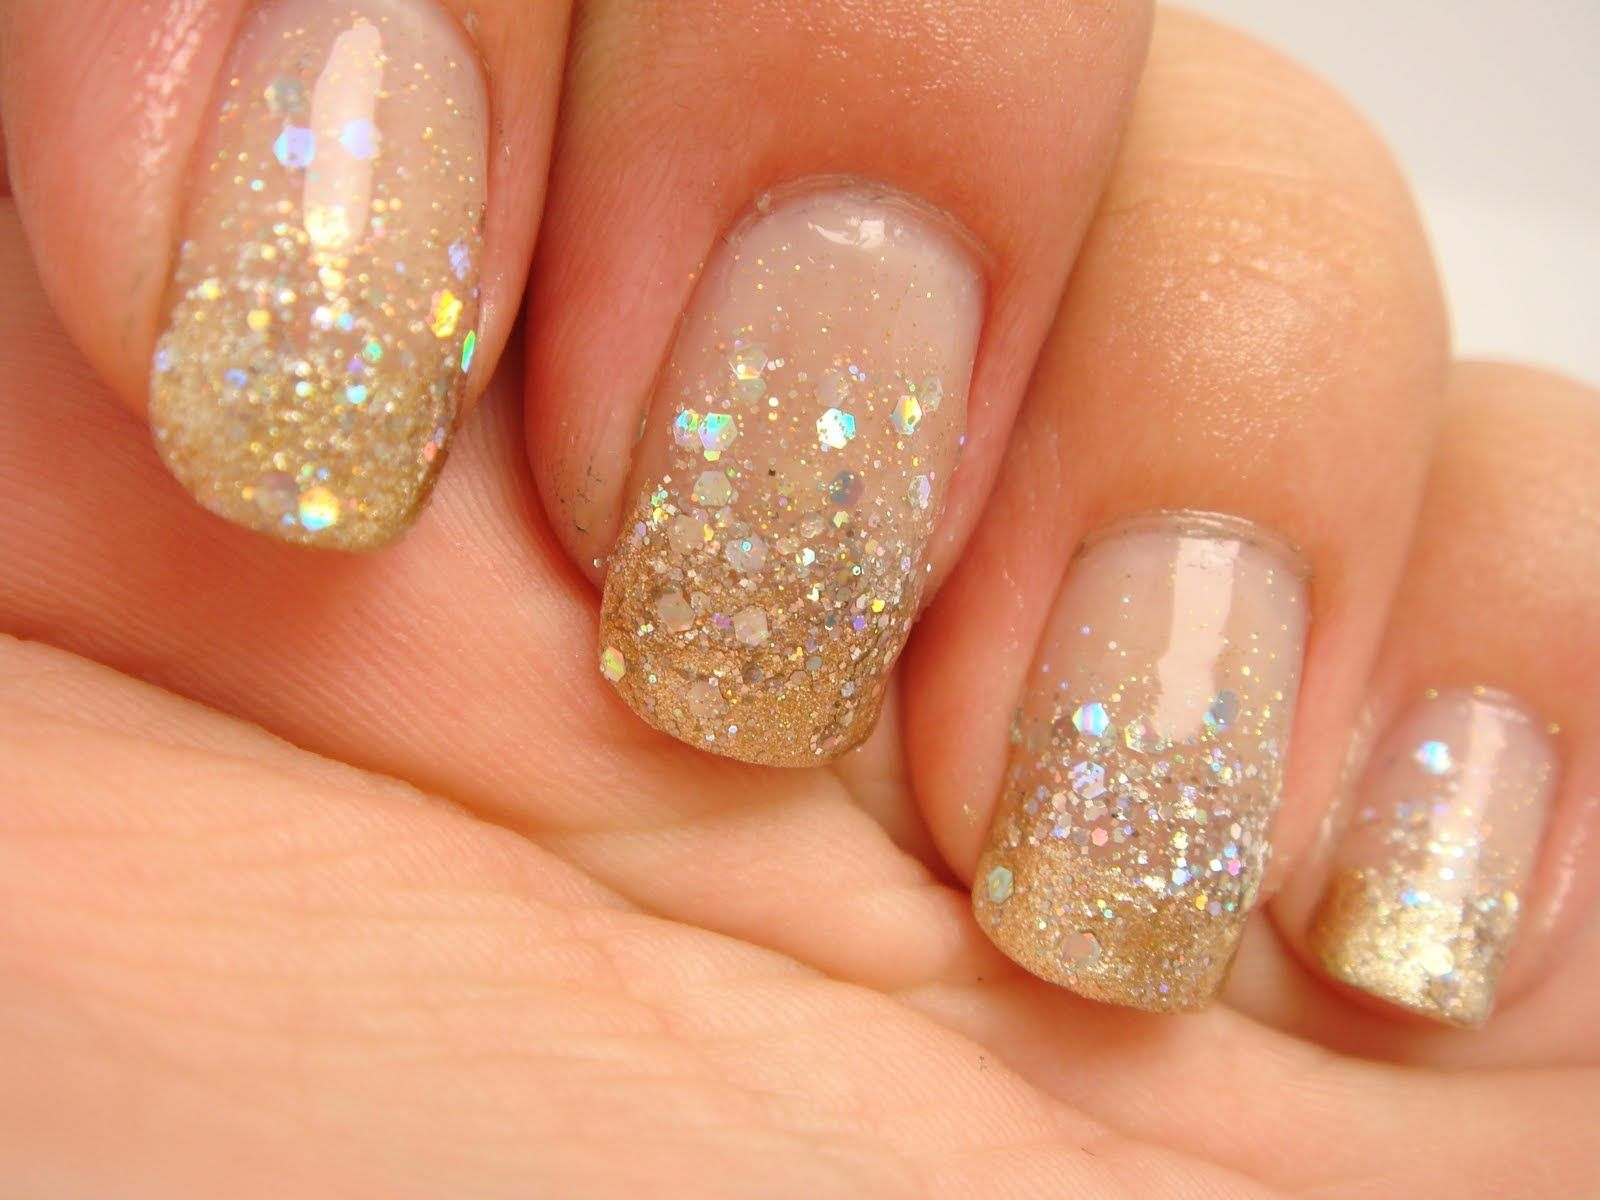 Gold nail designs for prom image collections nail art and nail gold nail designs for prom image collections nail art and nail gold nail designs for prom prinsesfo Images